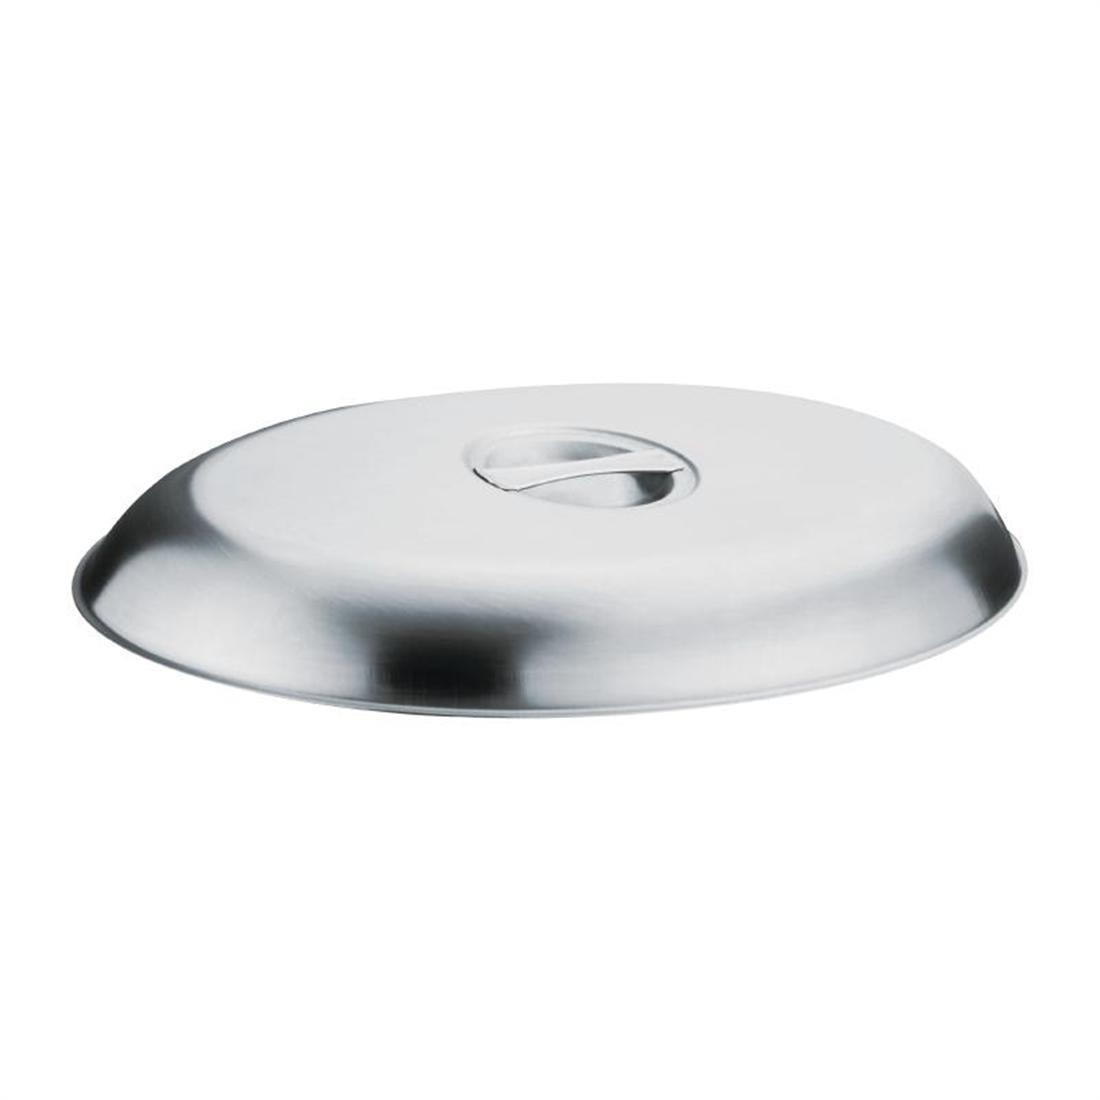 Olympia Oval Vegetable Dish Lid 190 x 130mm